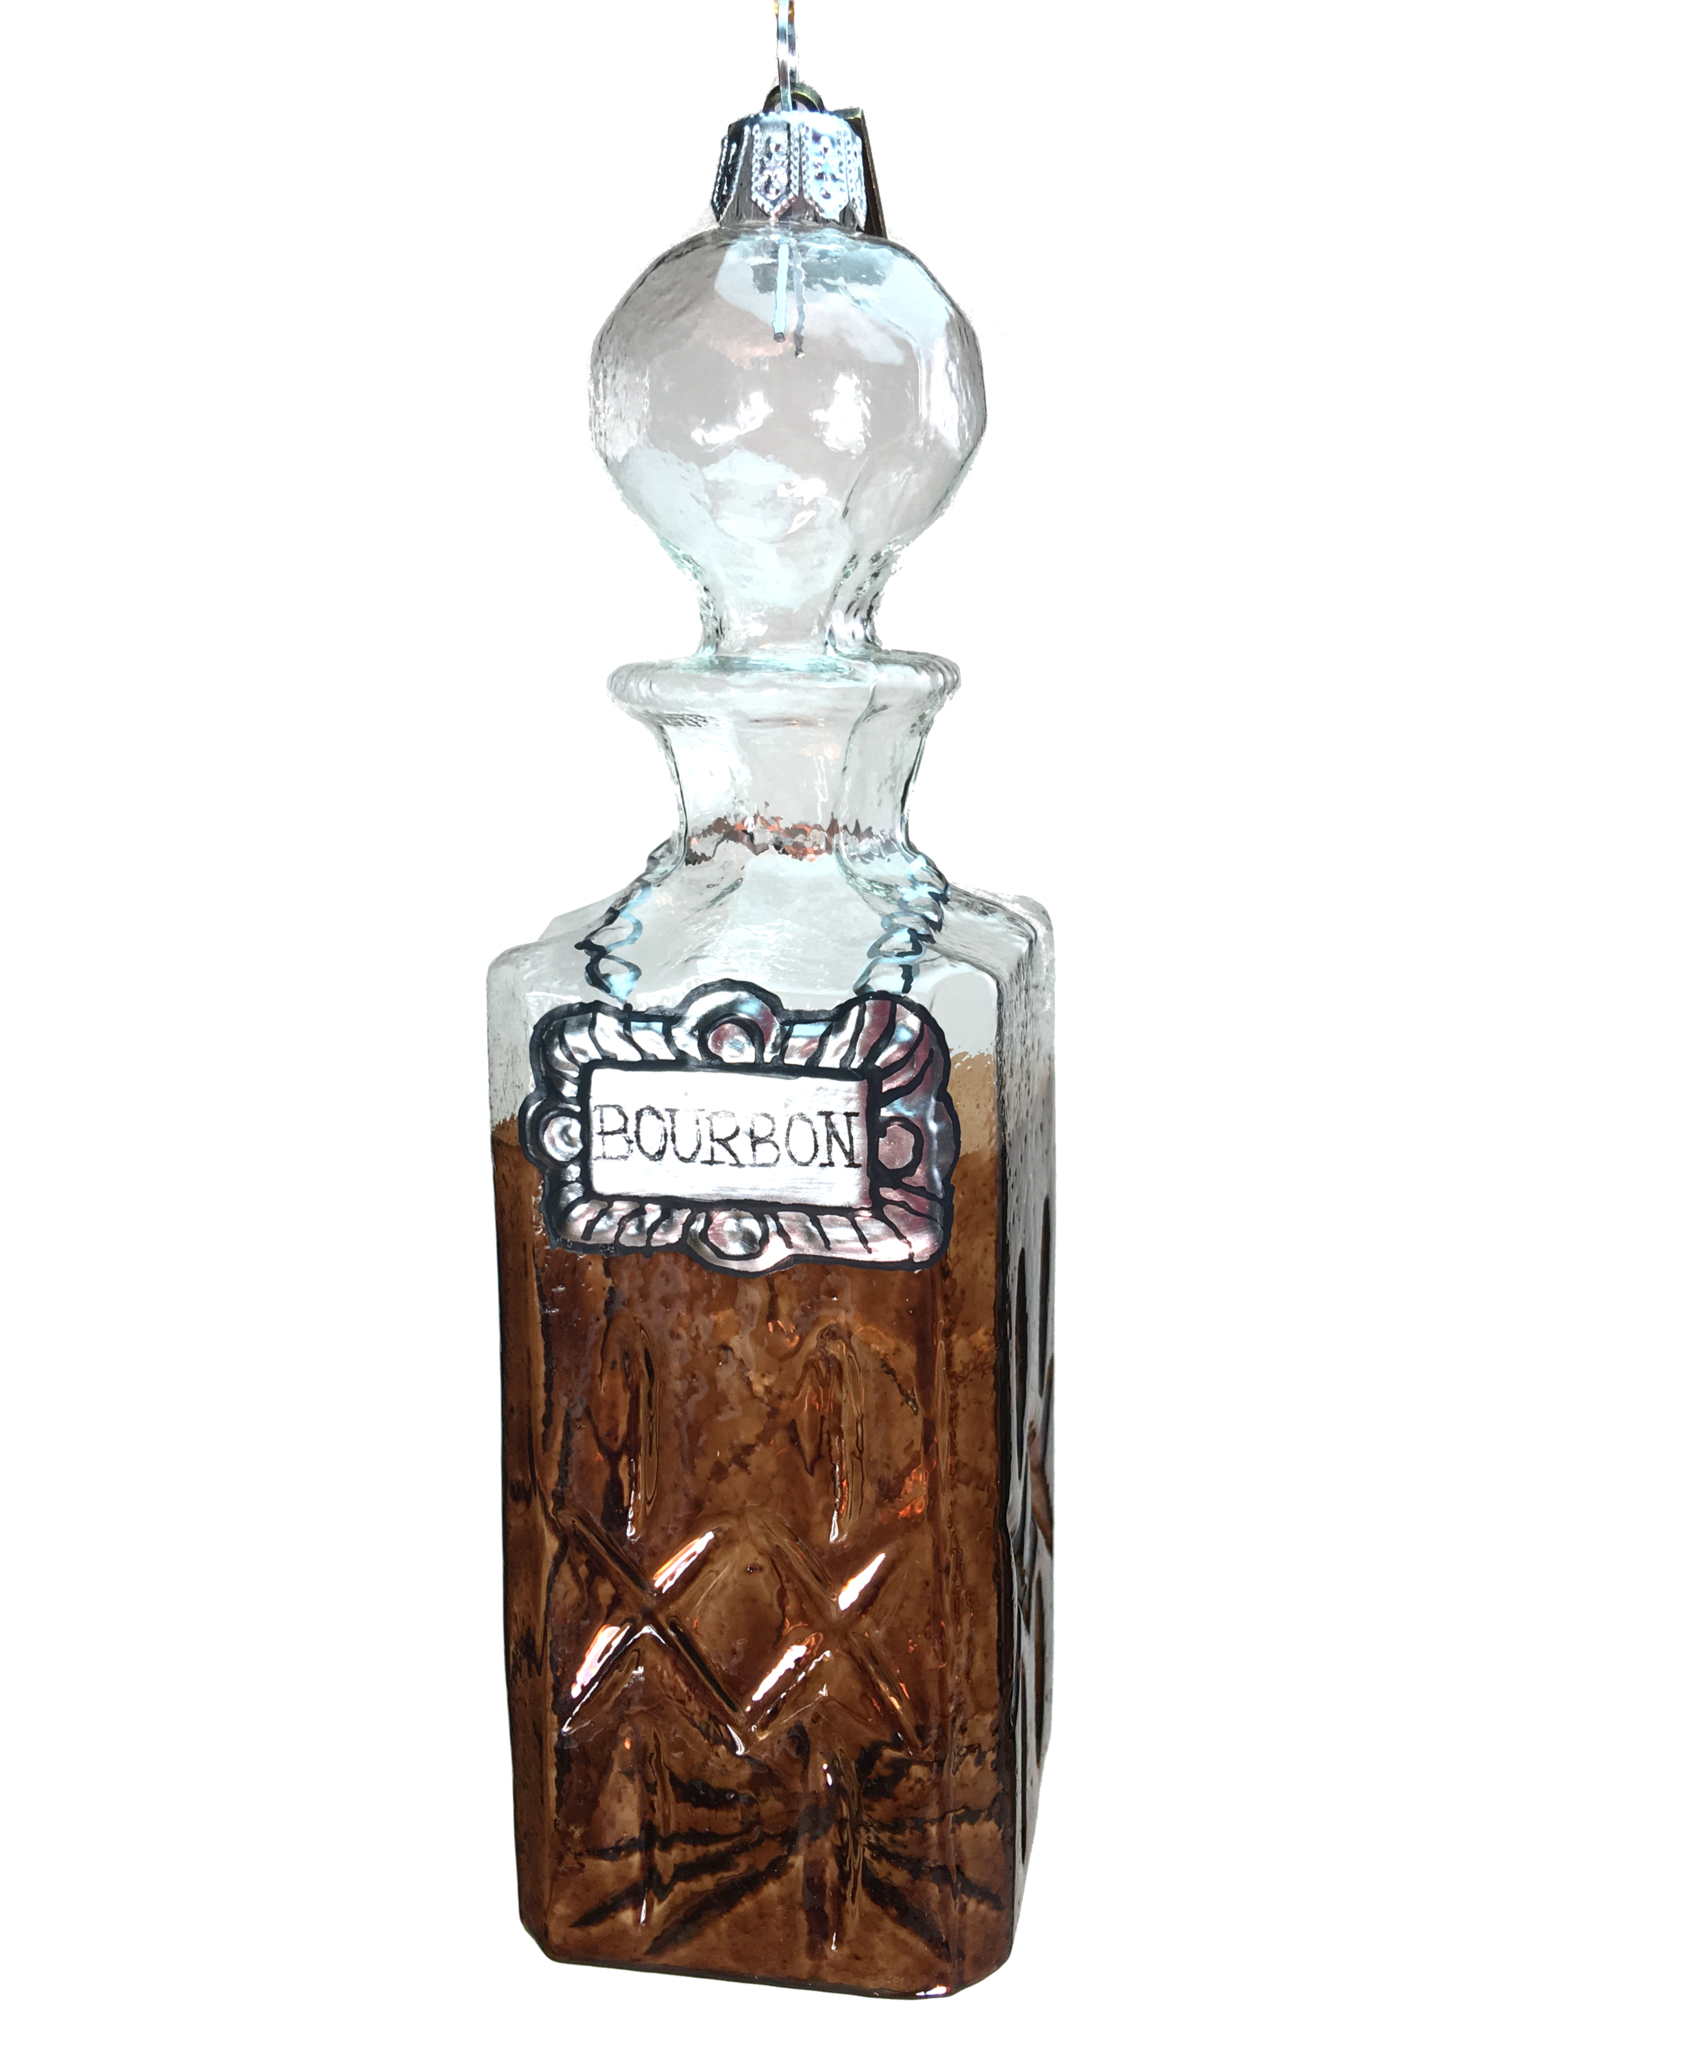 Eric Cortina Bourbon Decanter Glass Ornament